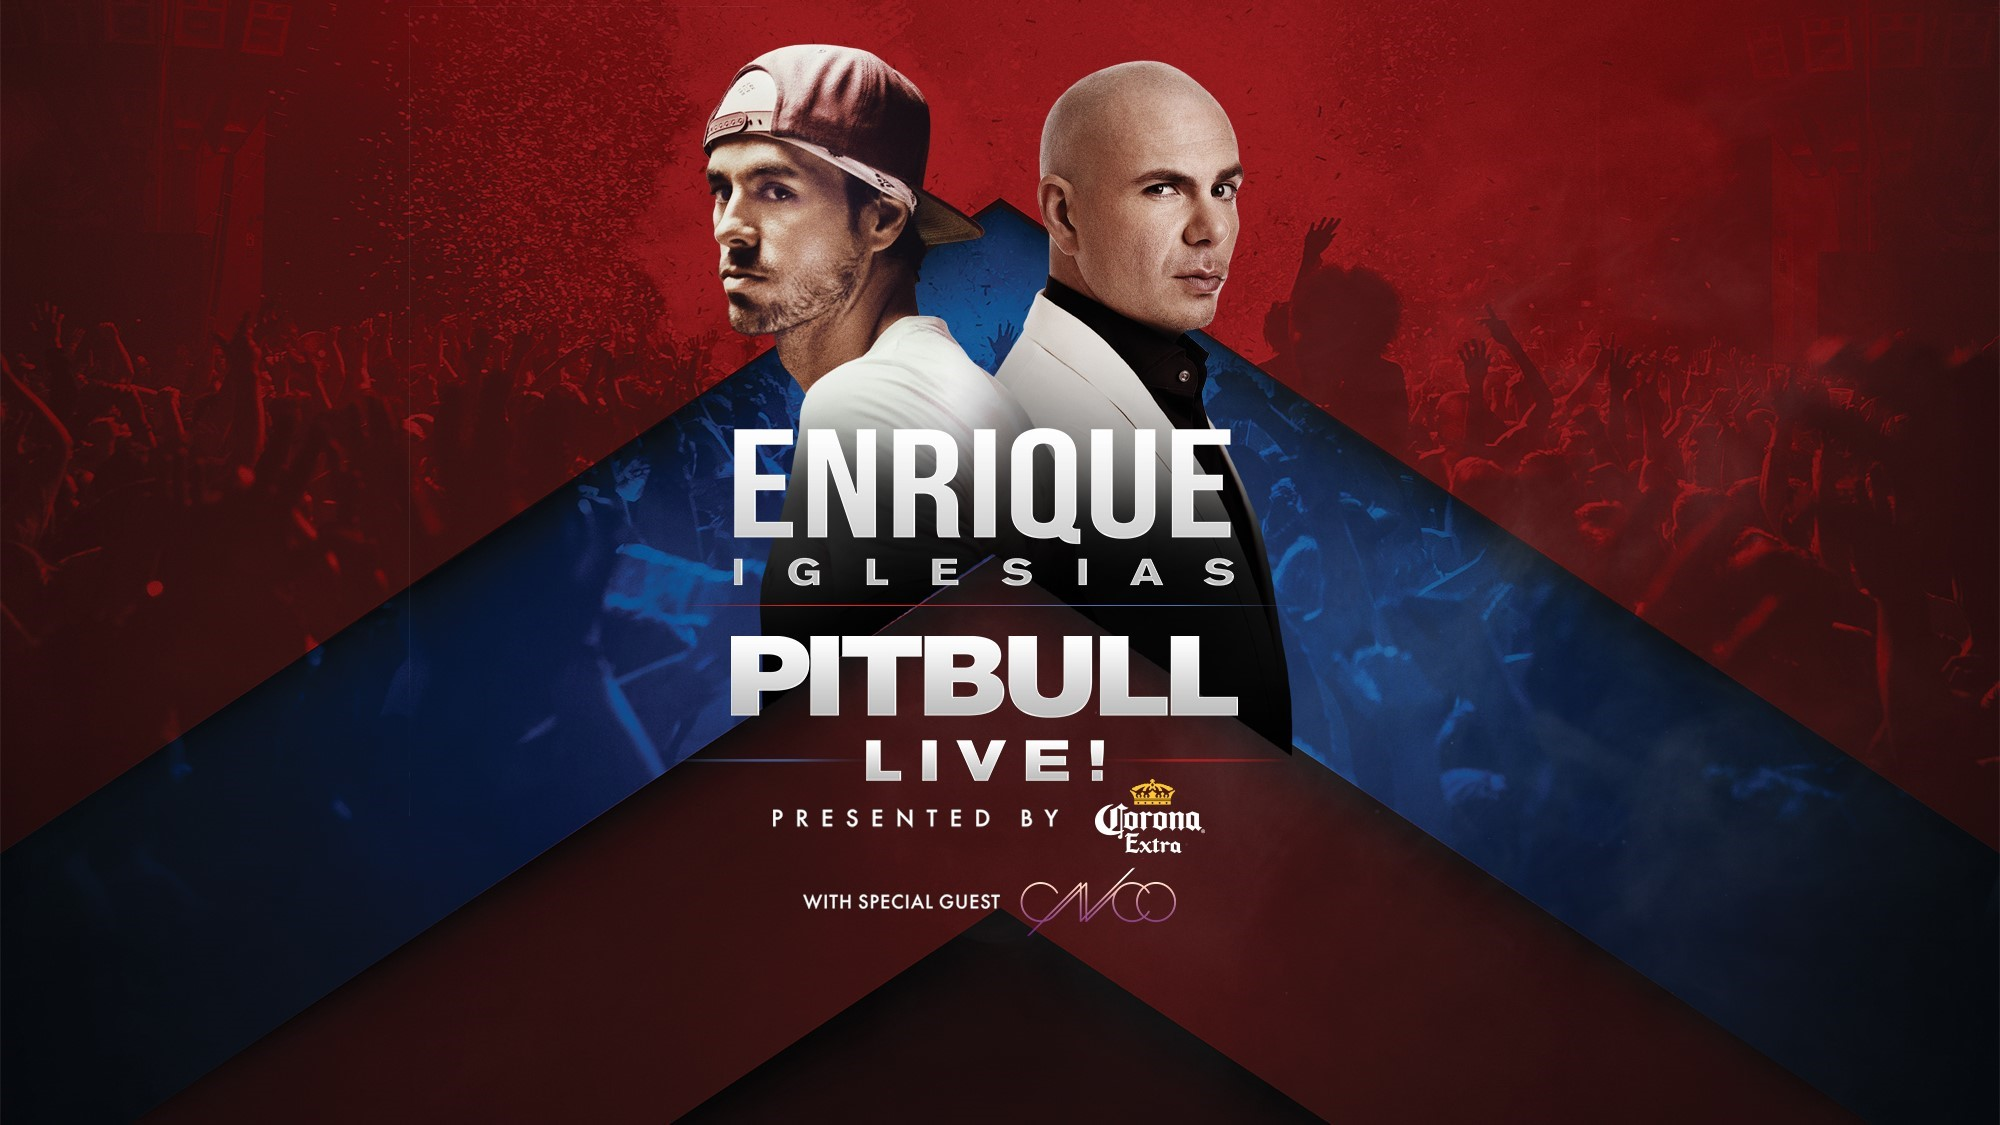 Top 5 Reasons Not To Miss Enrique Iglesias Pitbull Live Frank